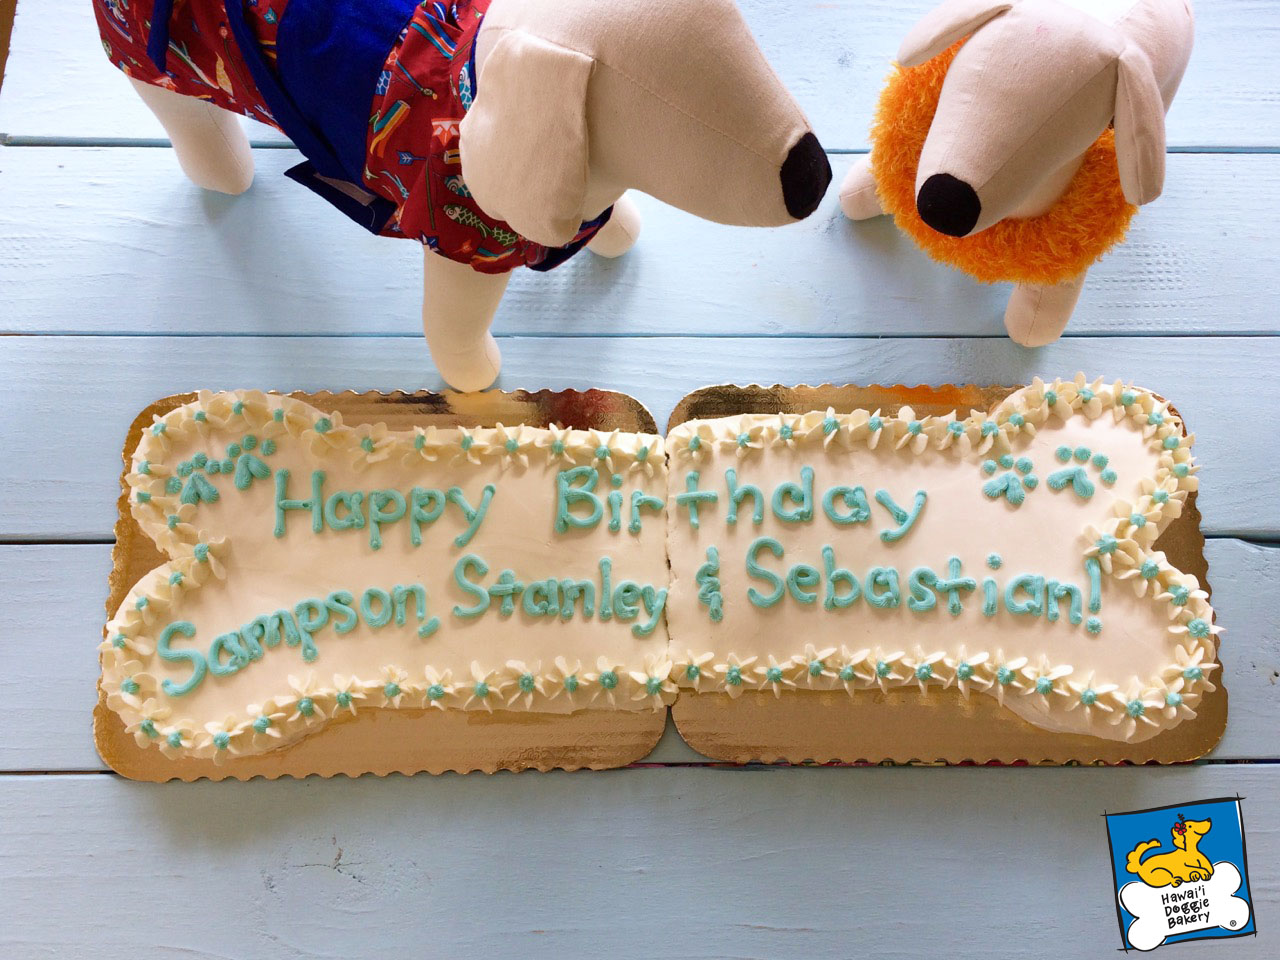 Specialty Cakes Hawaii Doggie Bakery